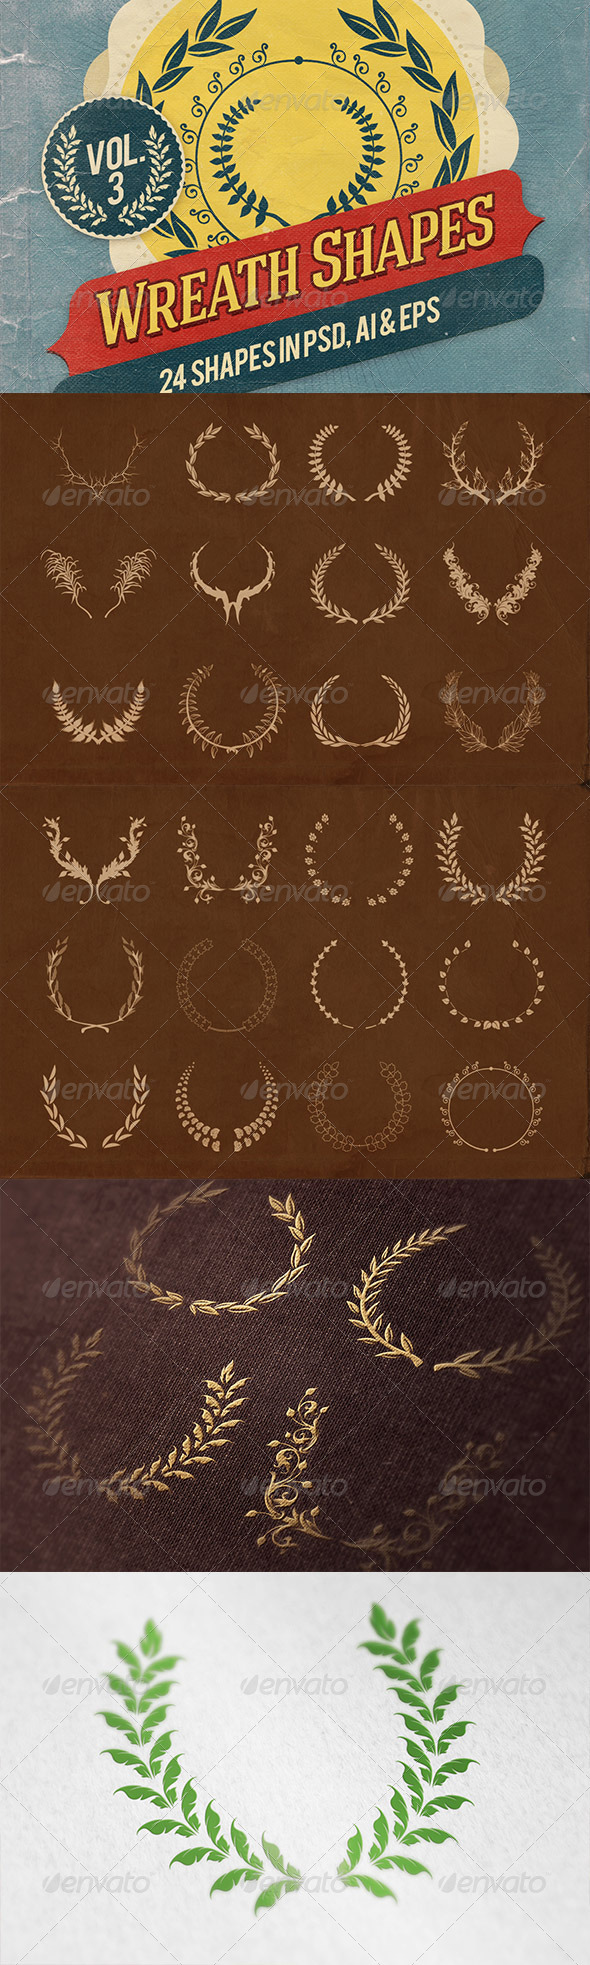 GraphicRiver Wreath Shapes Vol.3 7126582